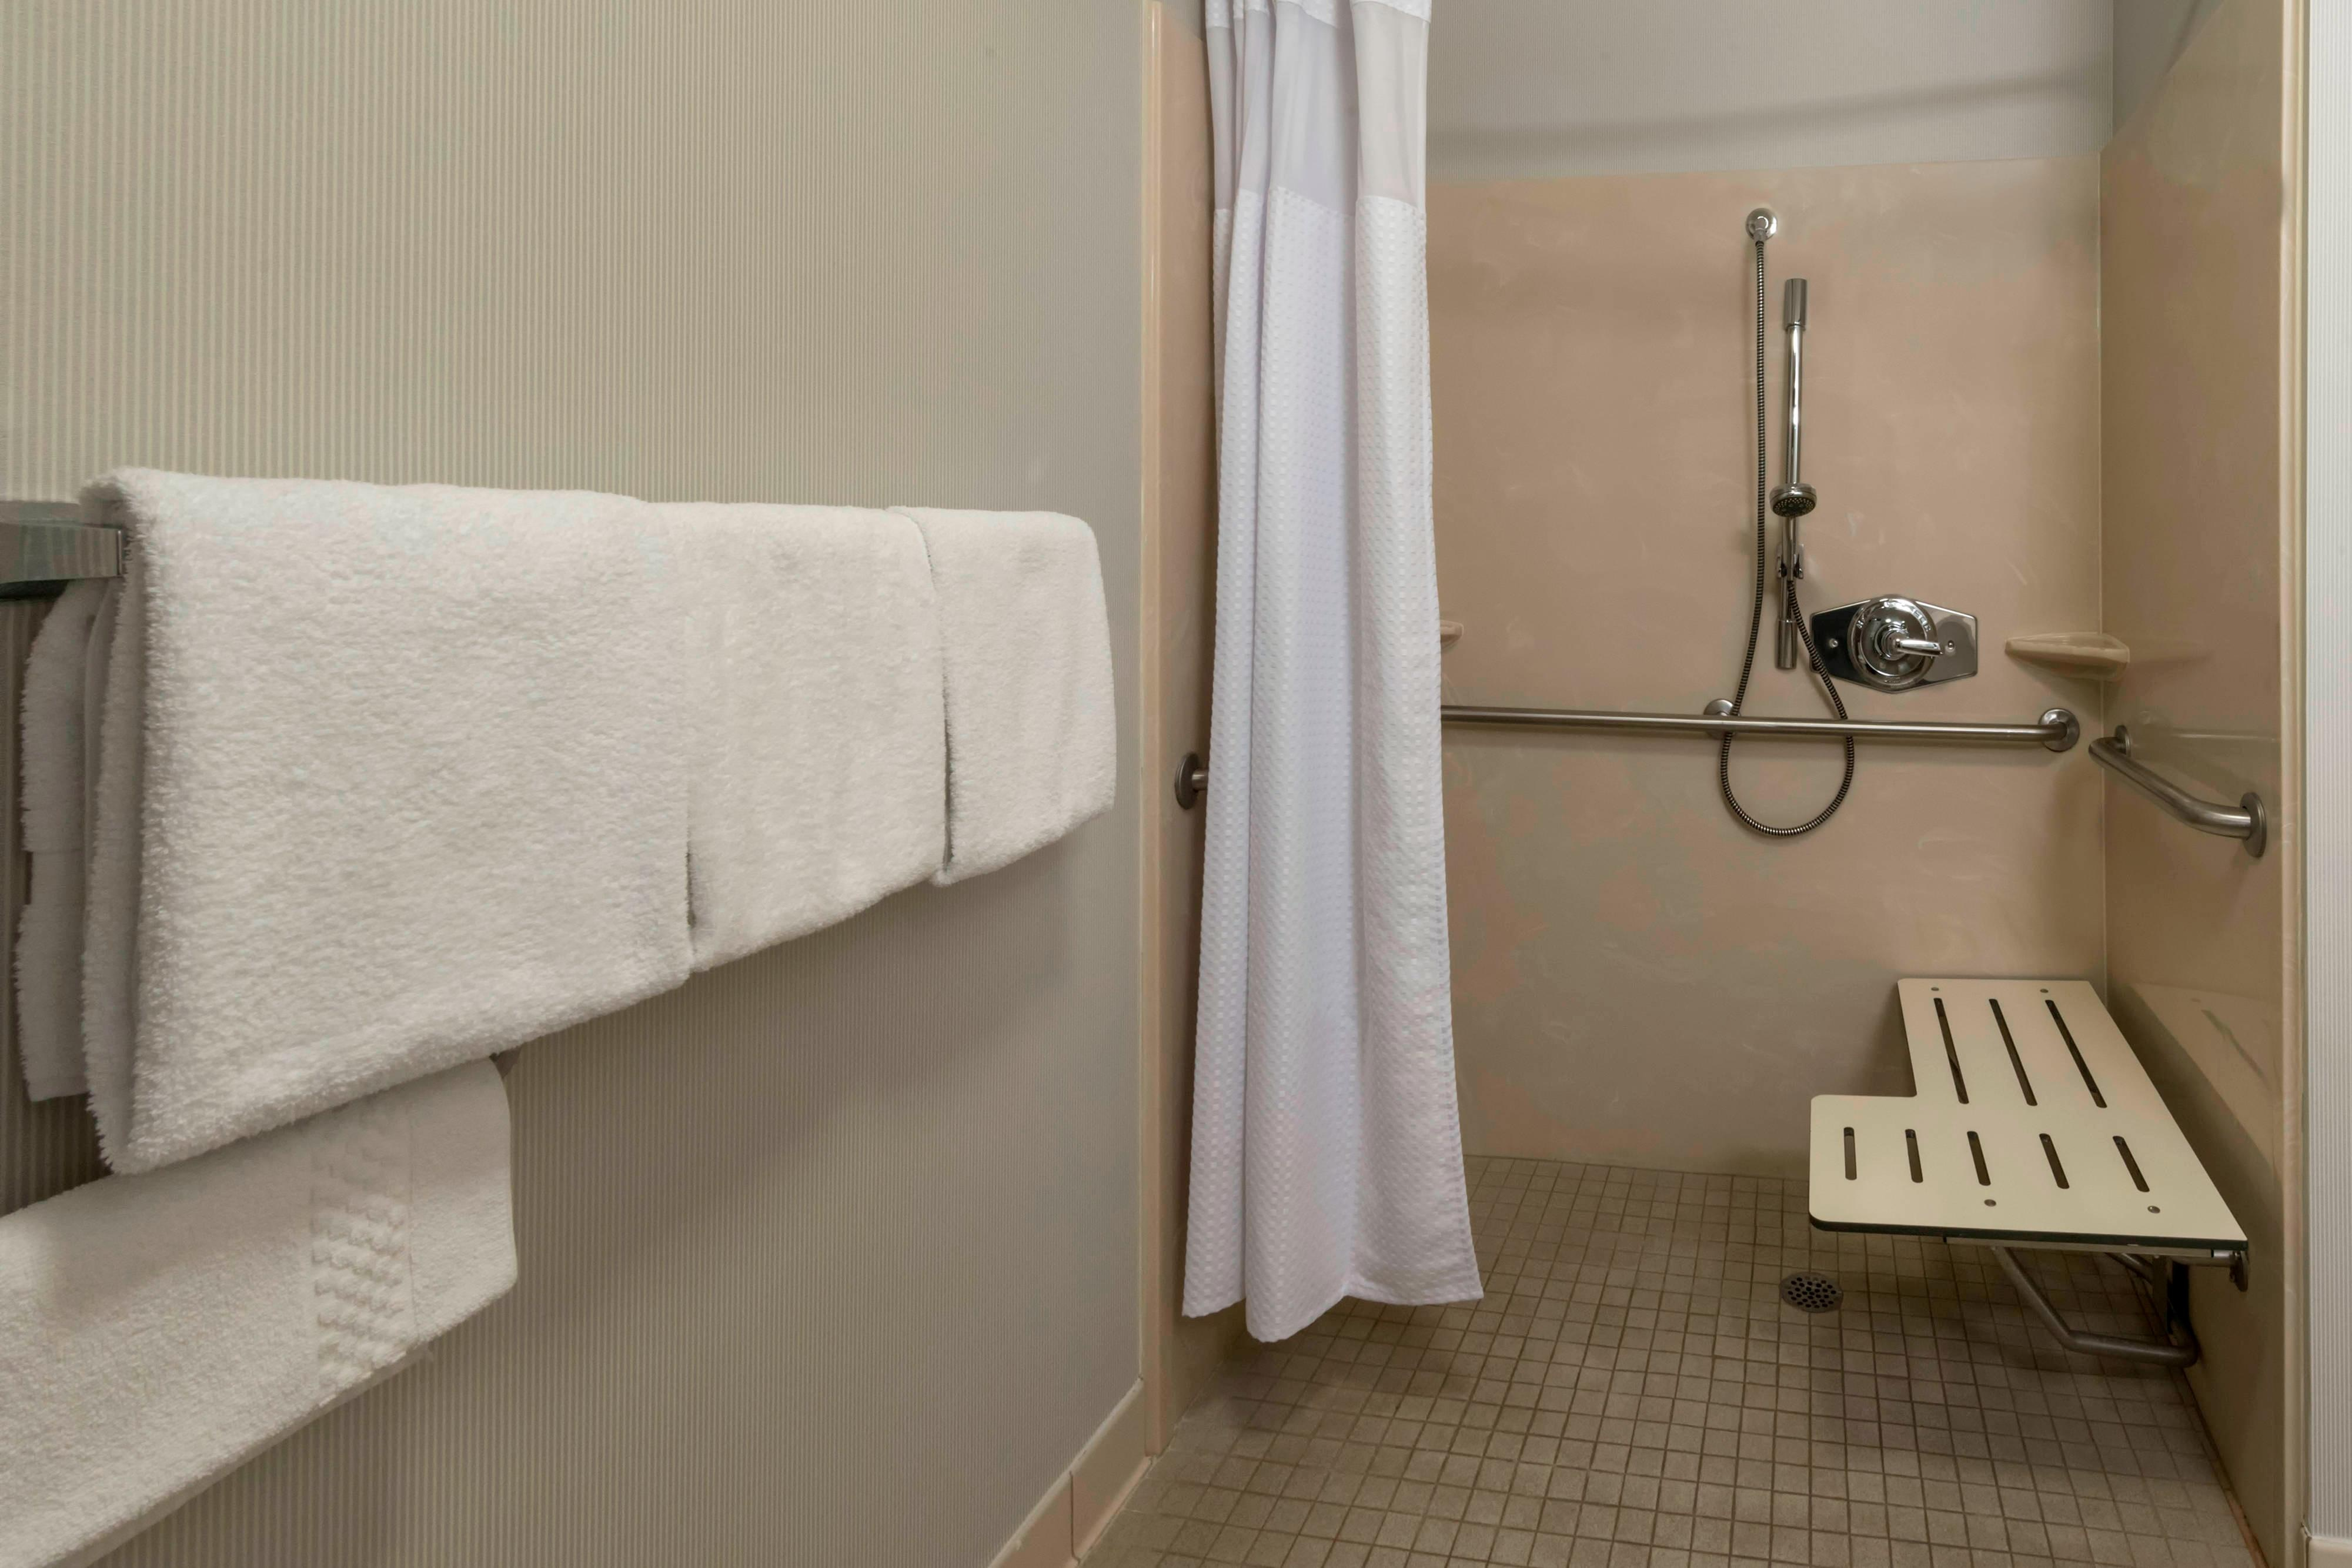 Lakeland Accessible Bathroom